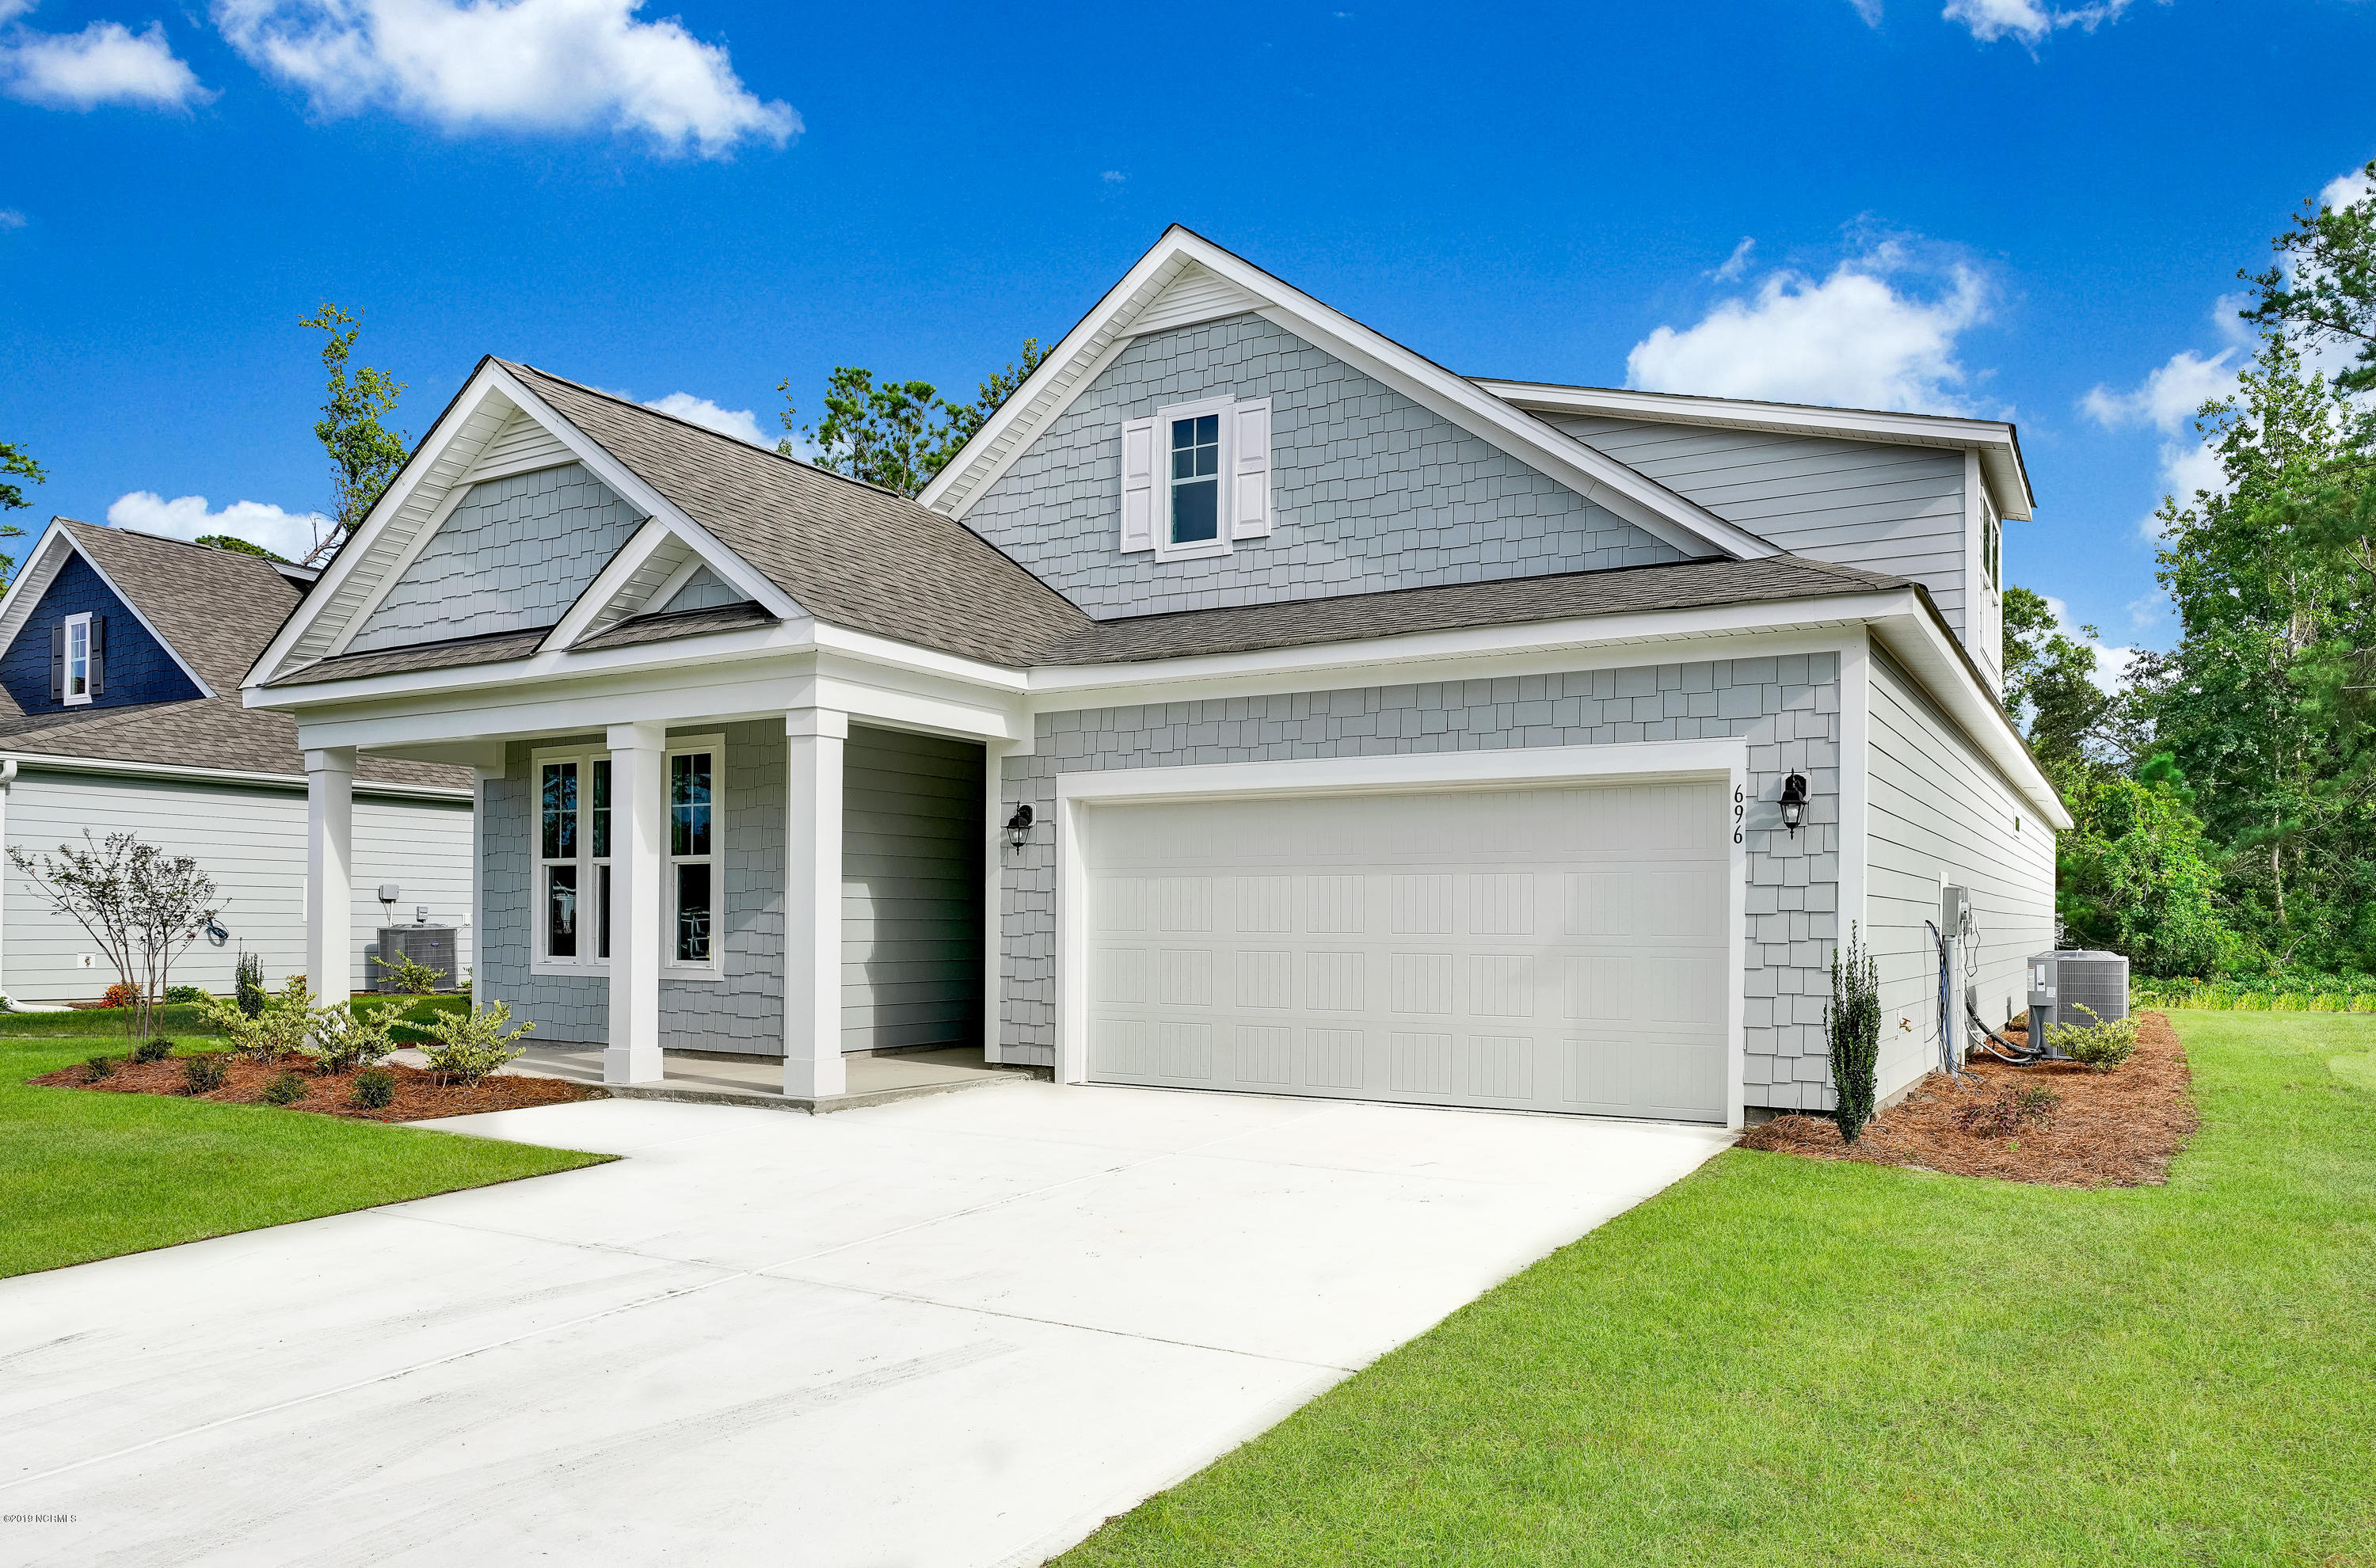 696 Seathwaite Lane #lot 1218 Leland, NC 28451